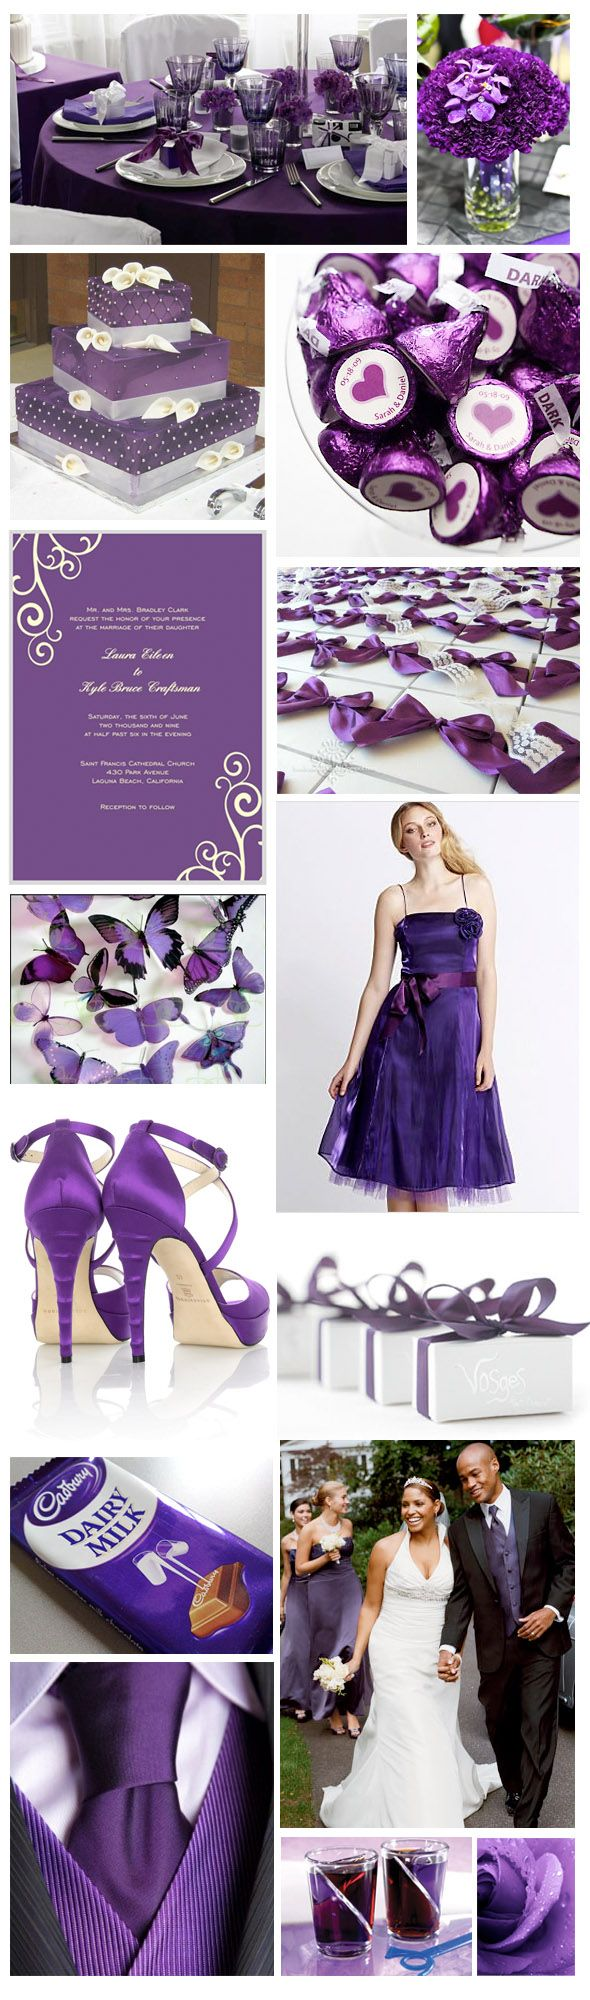 #Purple #Wedding Theme Inspiration and Ideas